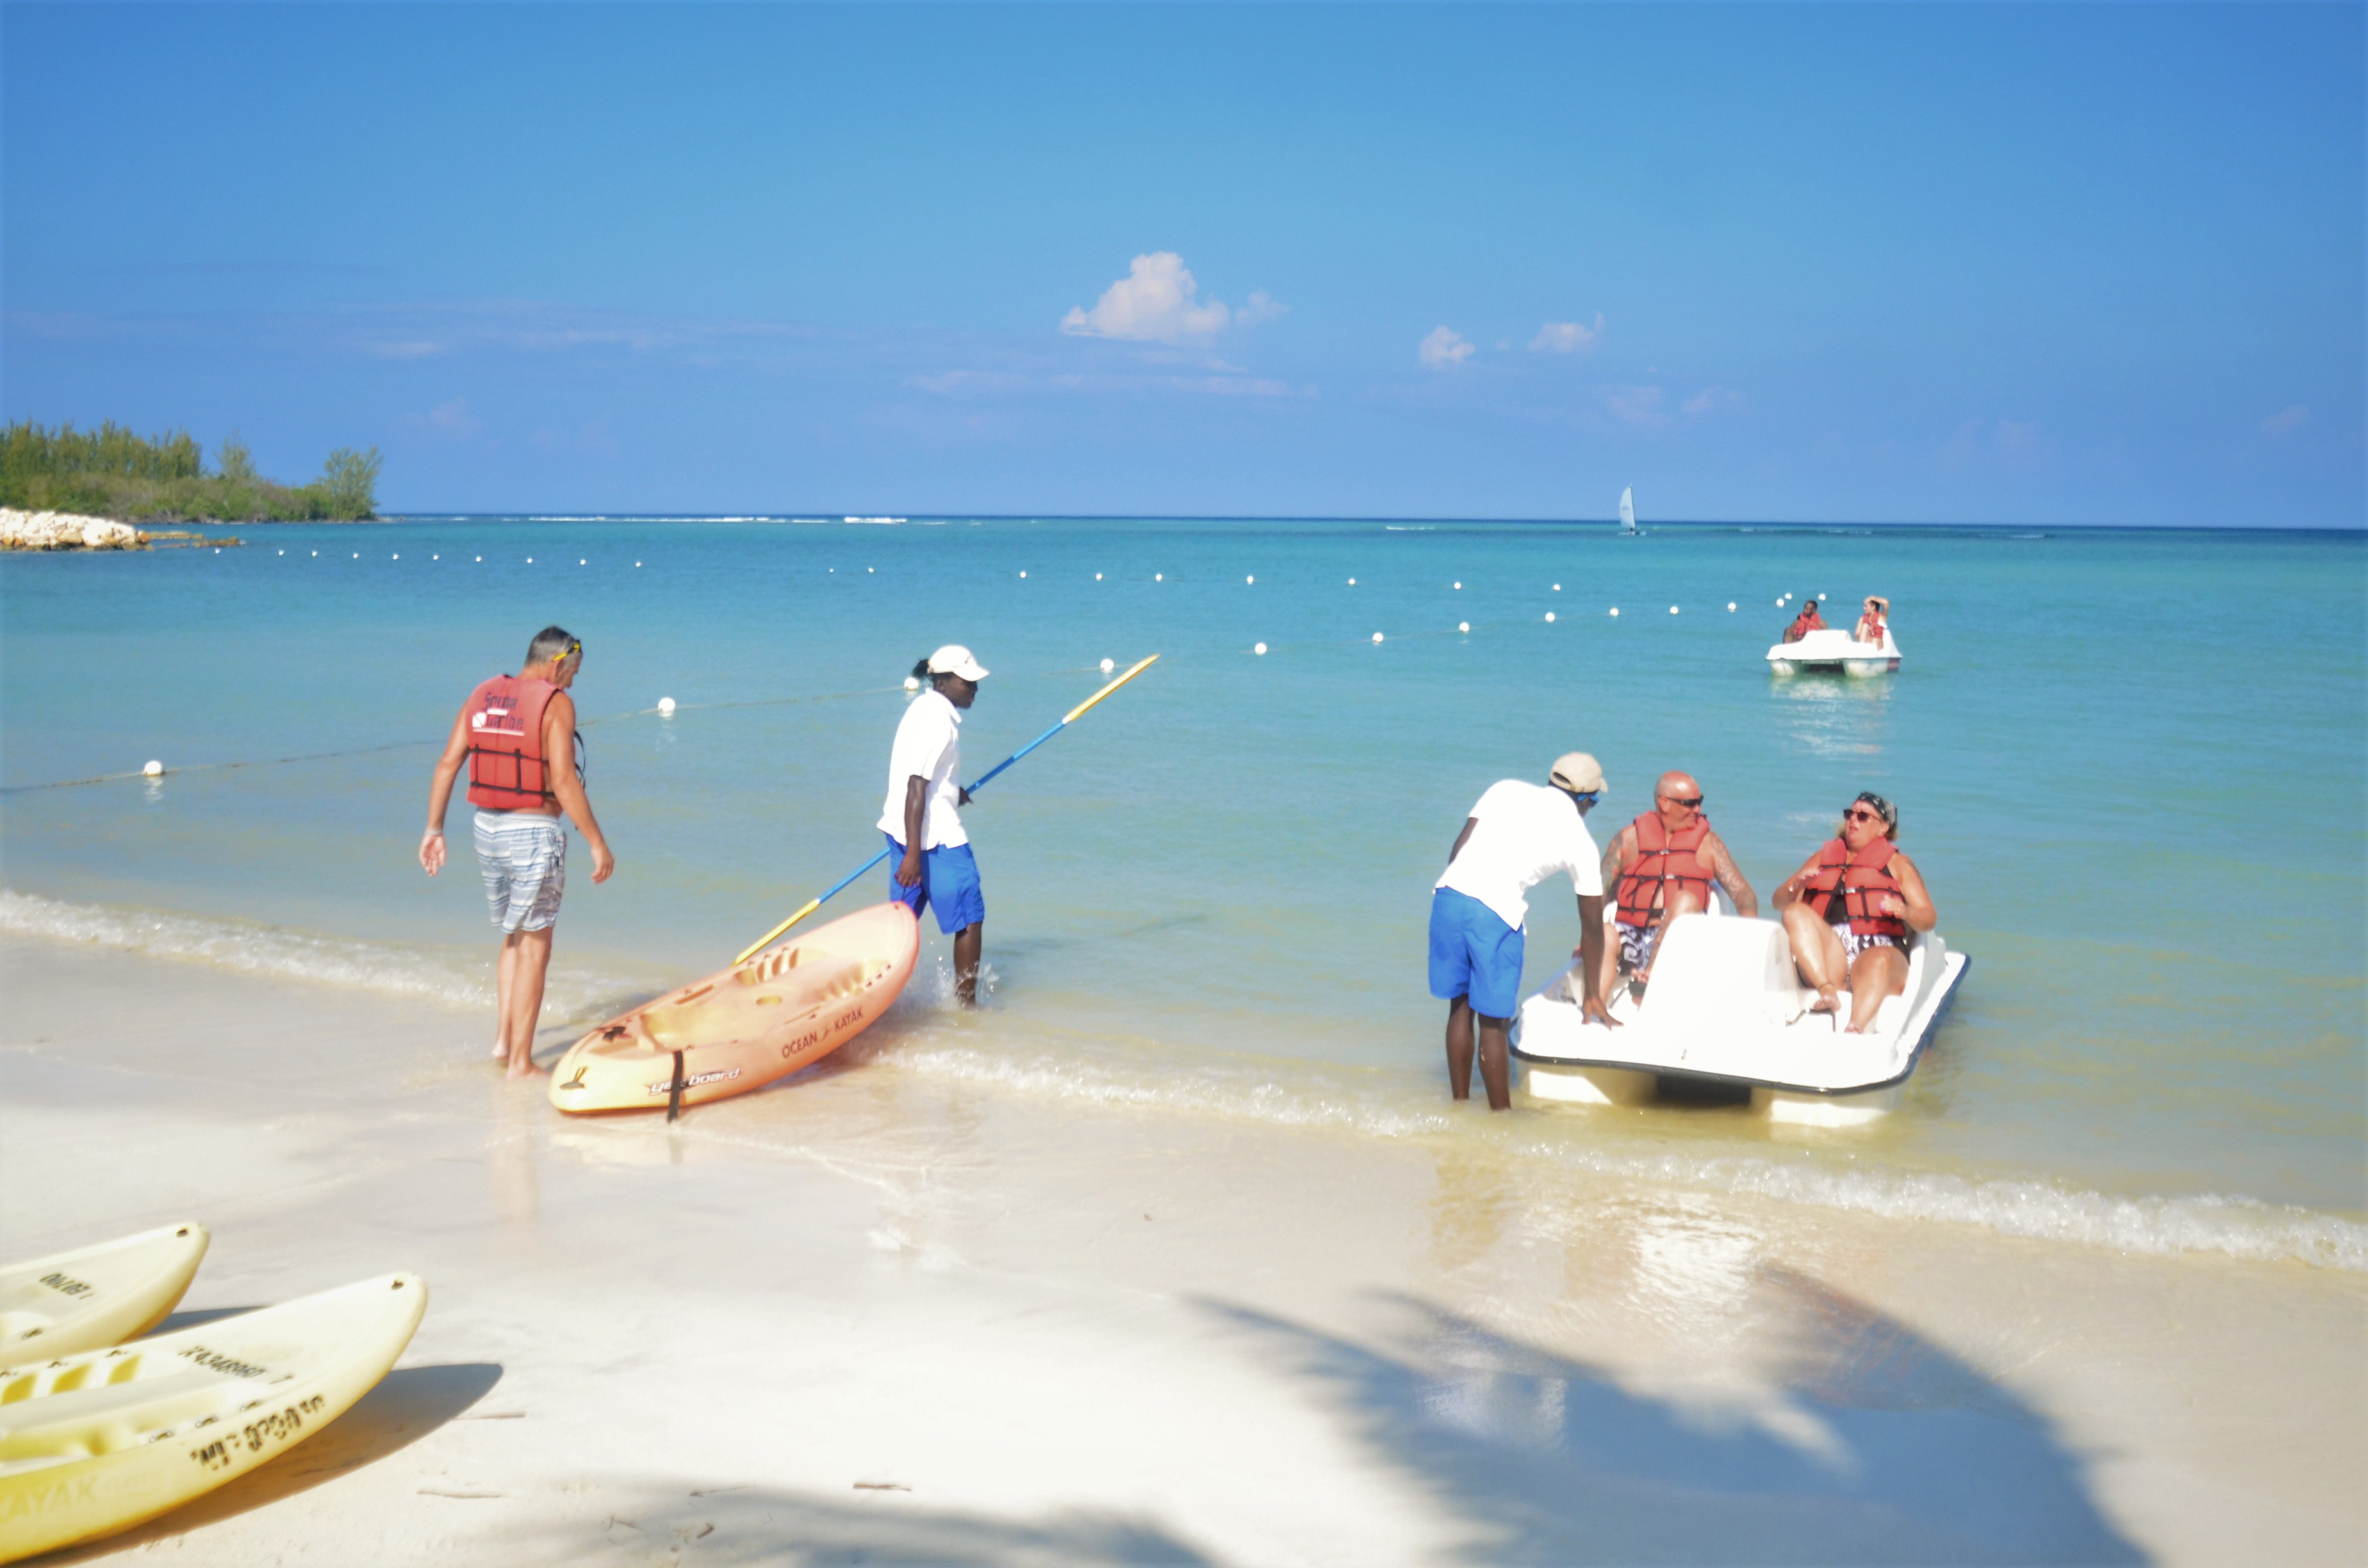 RIU offers you the chance to go kayaking or taking a ride on a pedalo in Jamaica